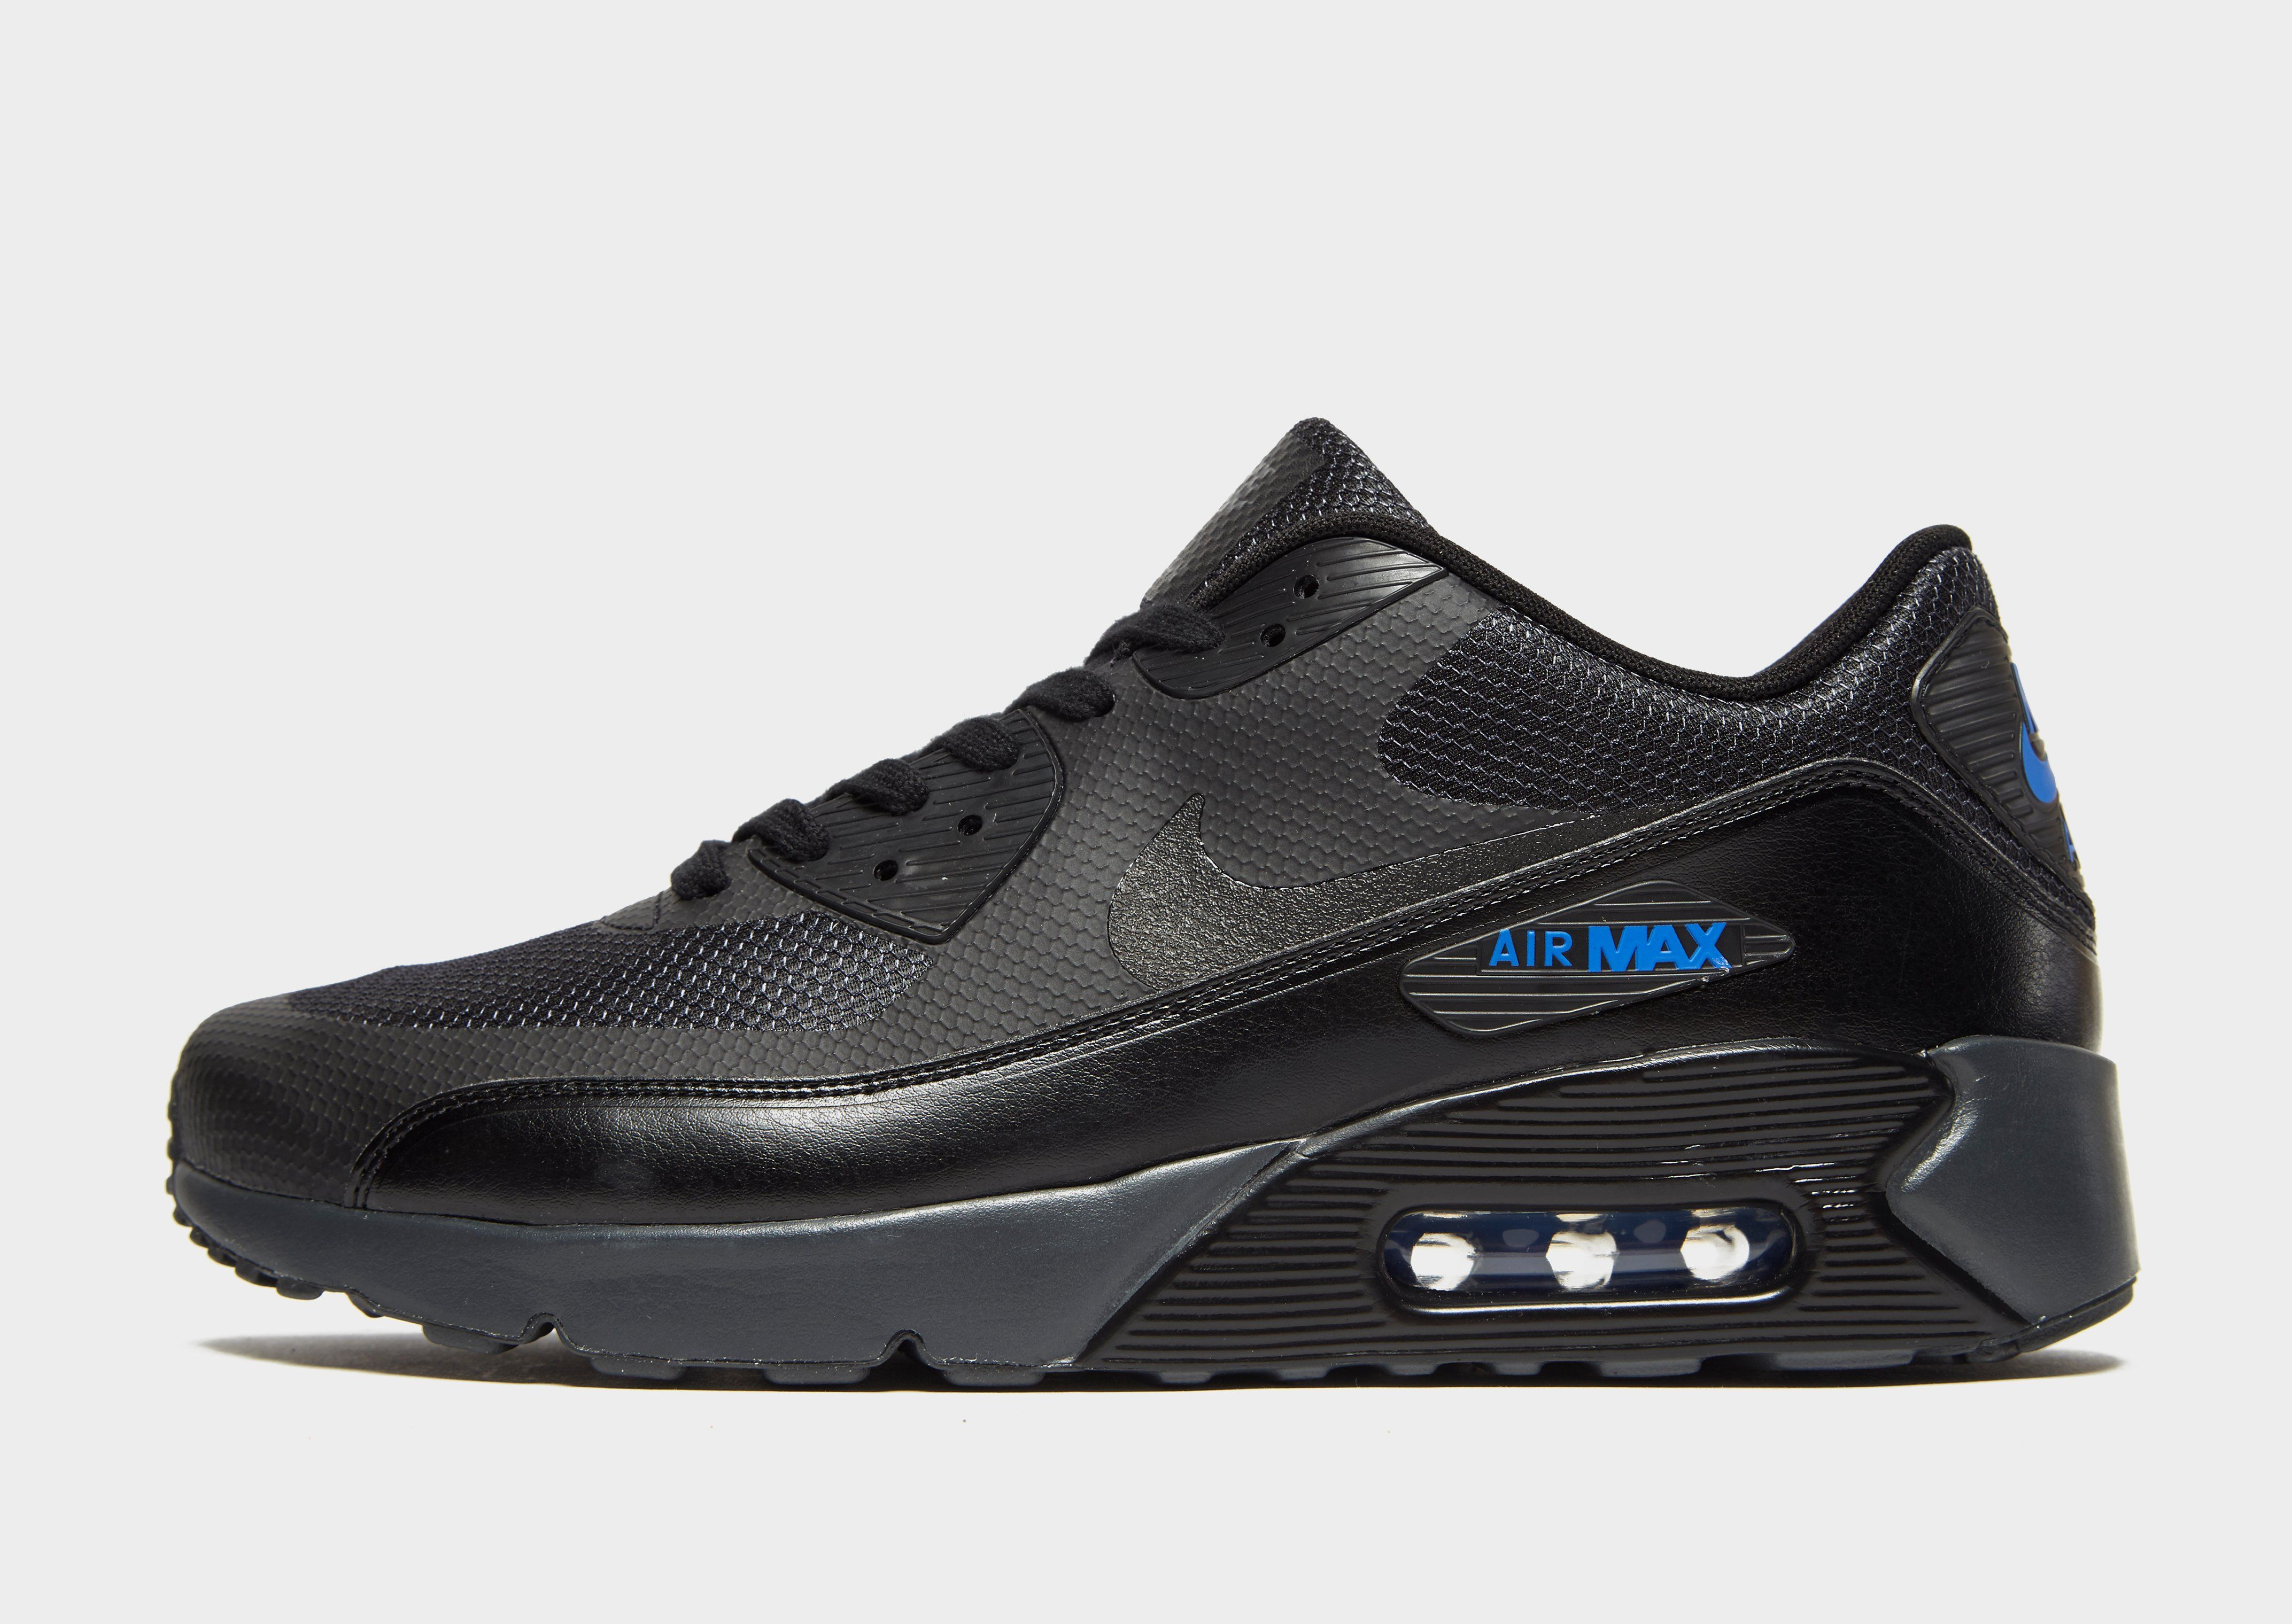 official photos 764d9 99262 Nike Air Max 90 Ultra 2.0   JD Sports Ireland